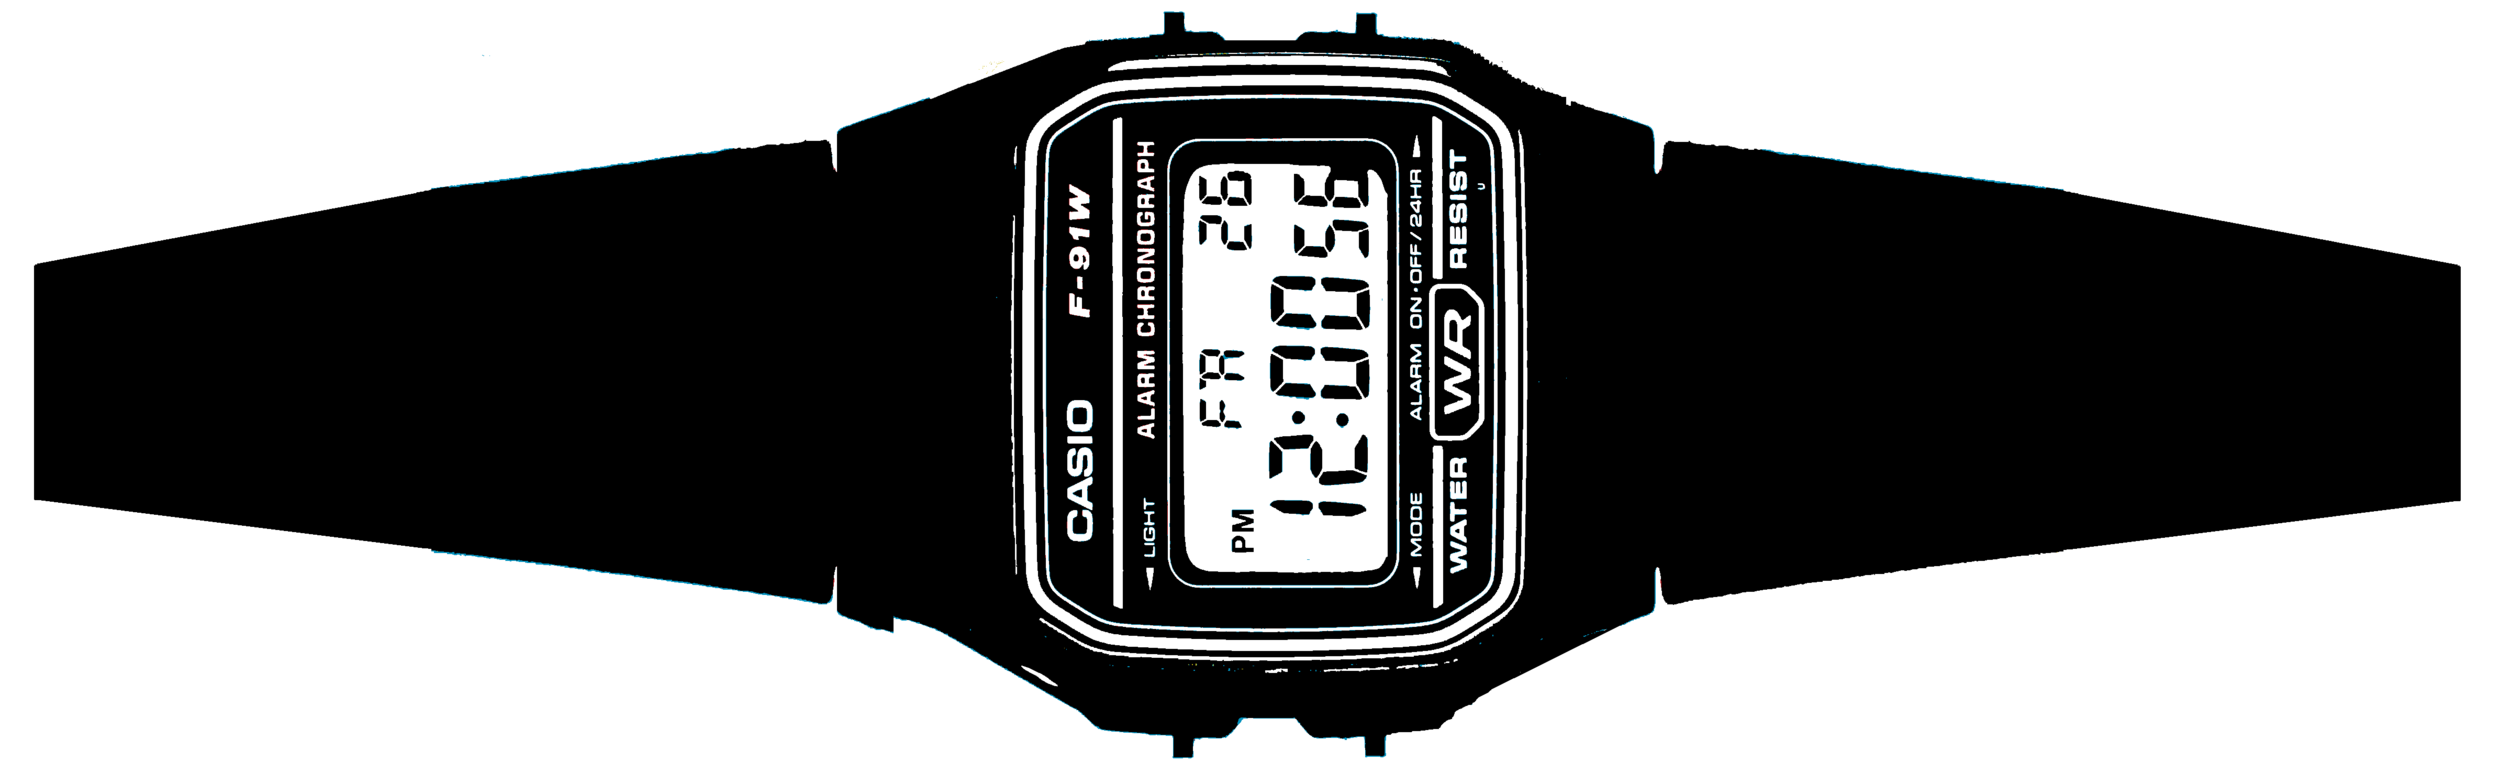 Image Credit: http://ninjas.digital/digits/stop-watch-game/